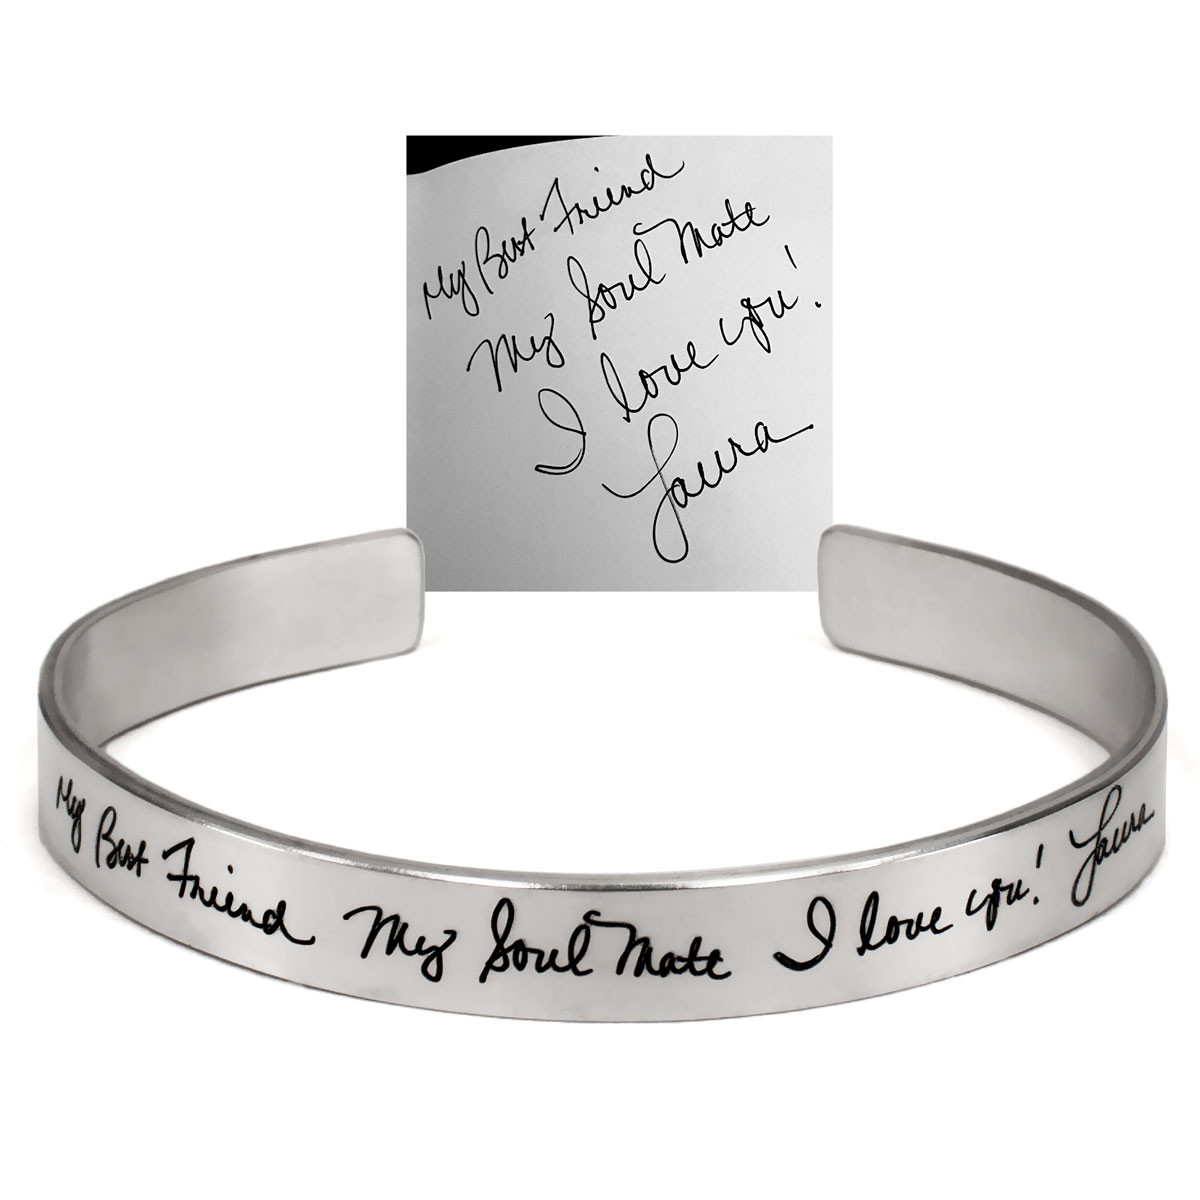 Custom handwritten note on a silver bracelet cuff. shown with original handwriting